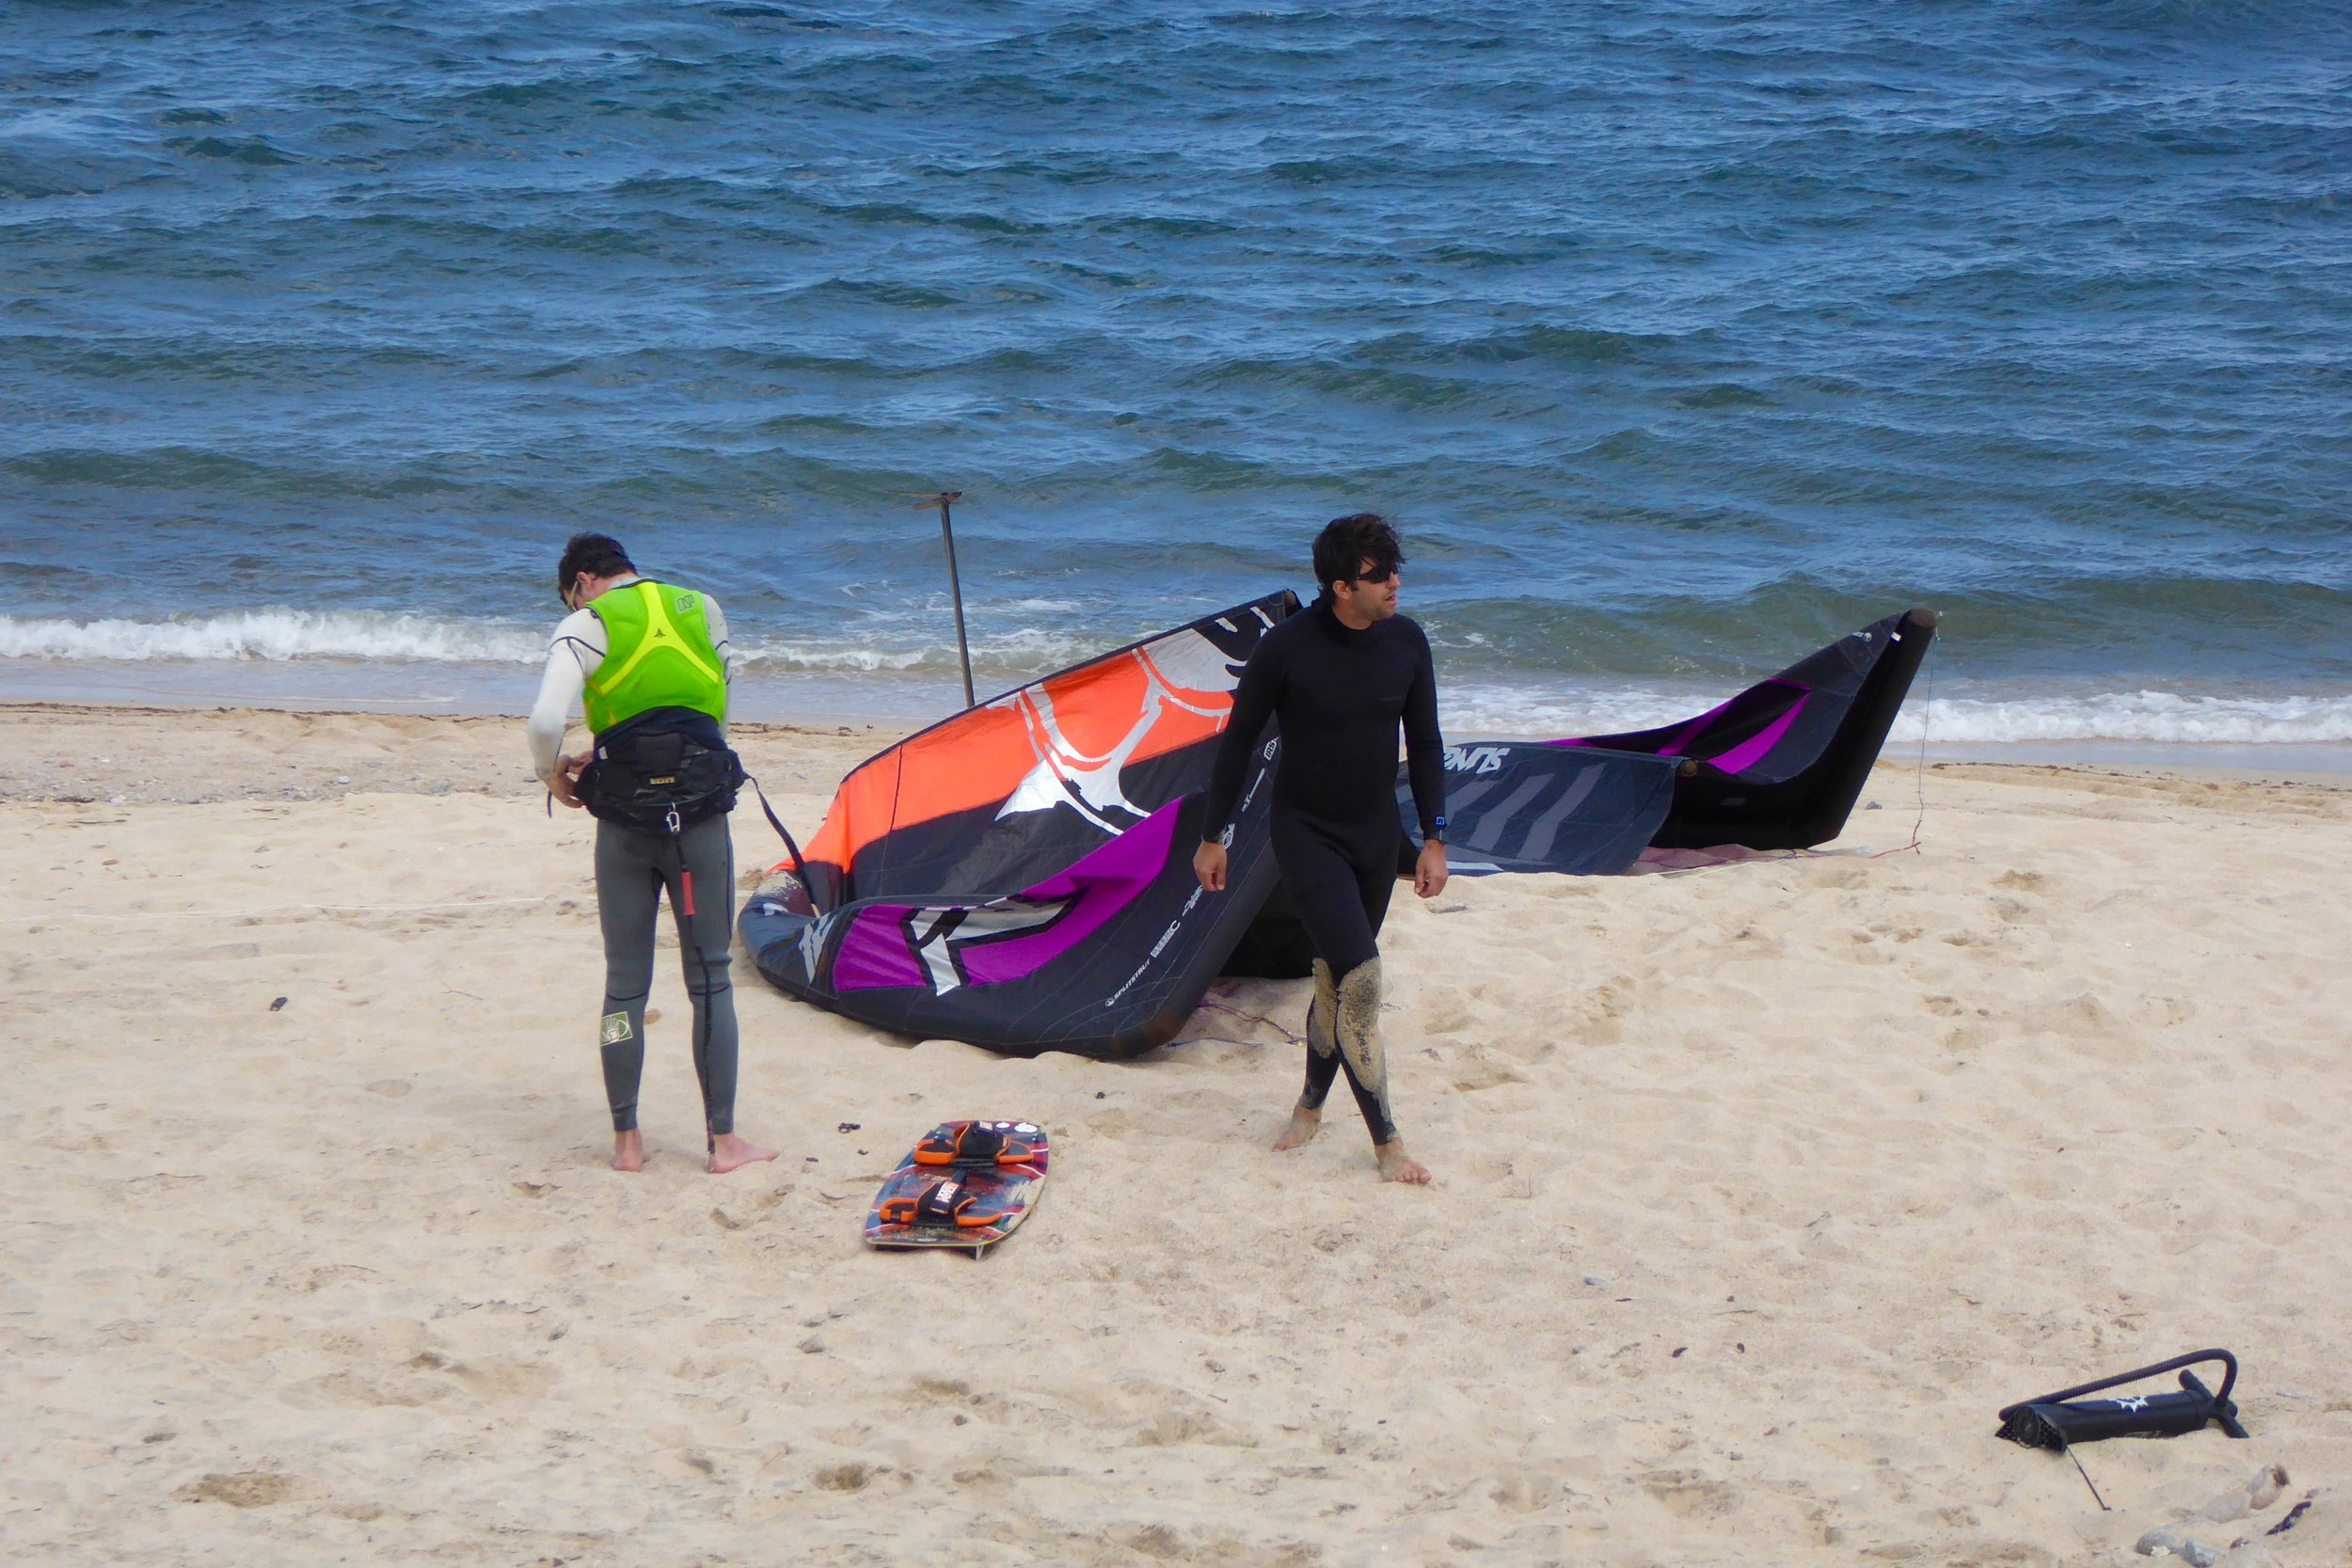 There is a kite and board for just about all the conditions they will encounter.